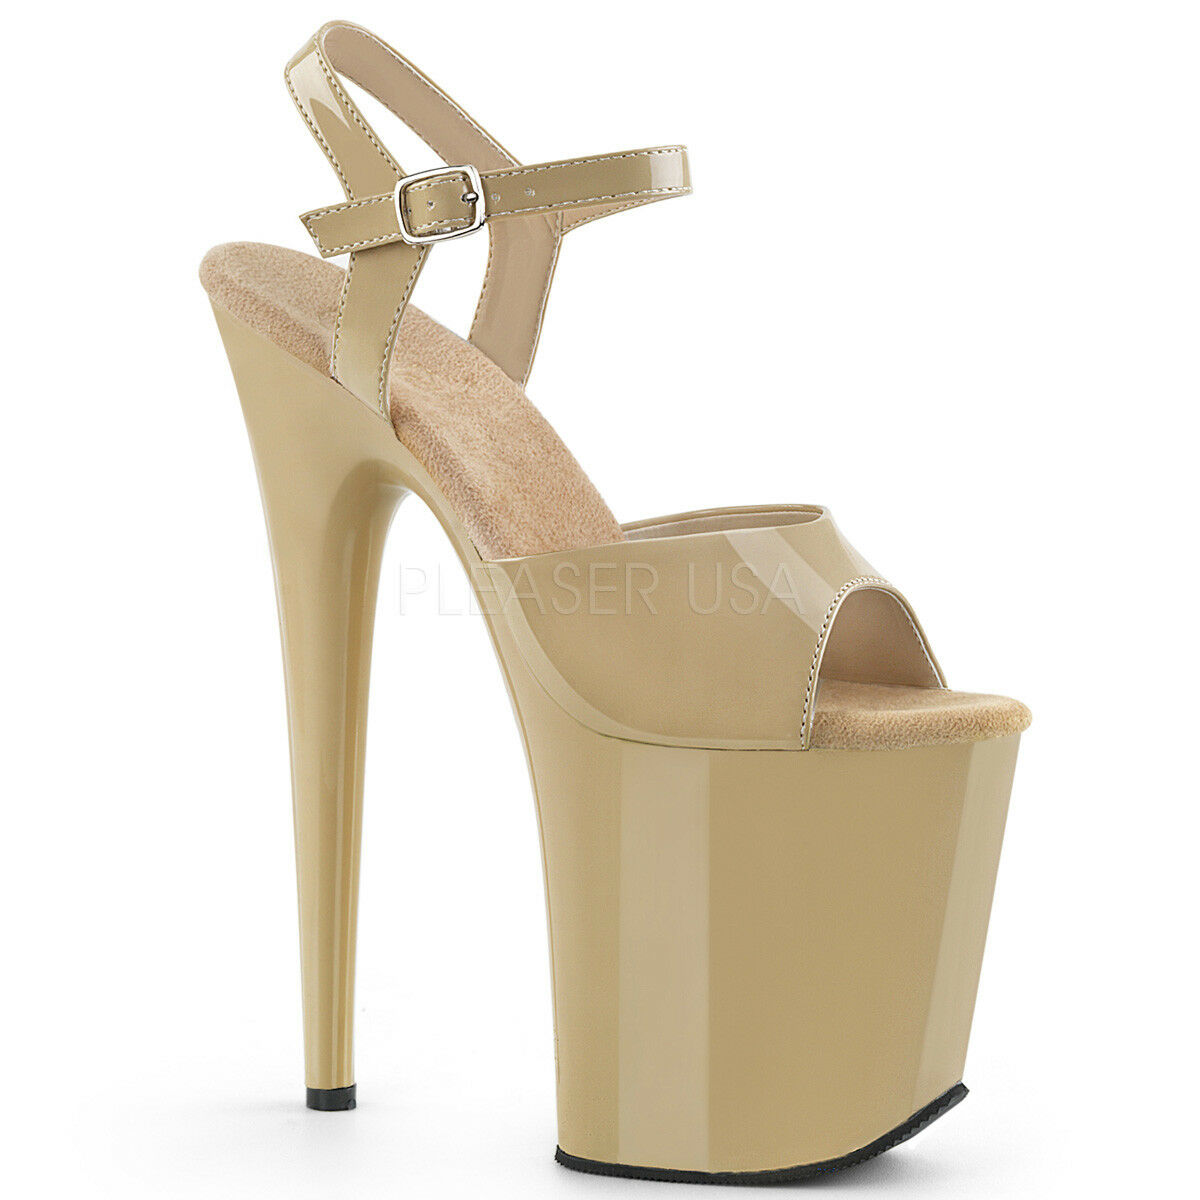 Pleaser FLAMINGO-809 Women's Cream Patent High Heel Platform Ankle Strap Sandals